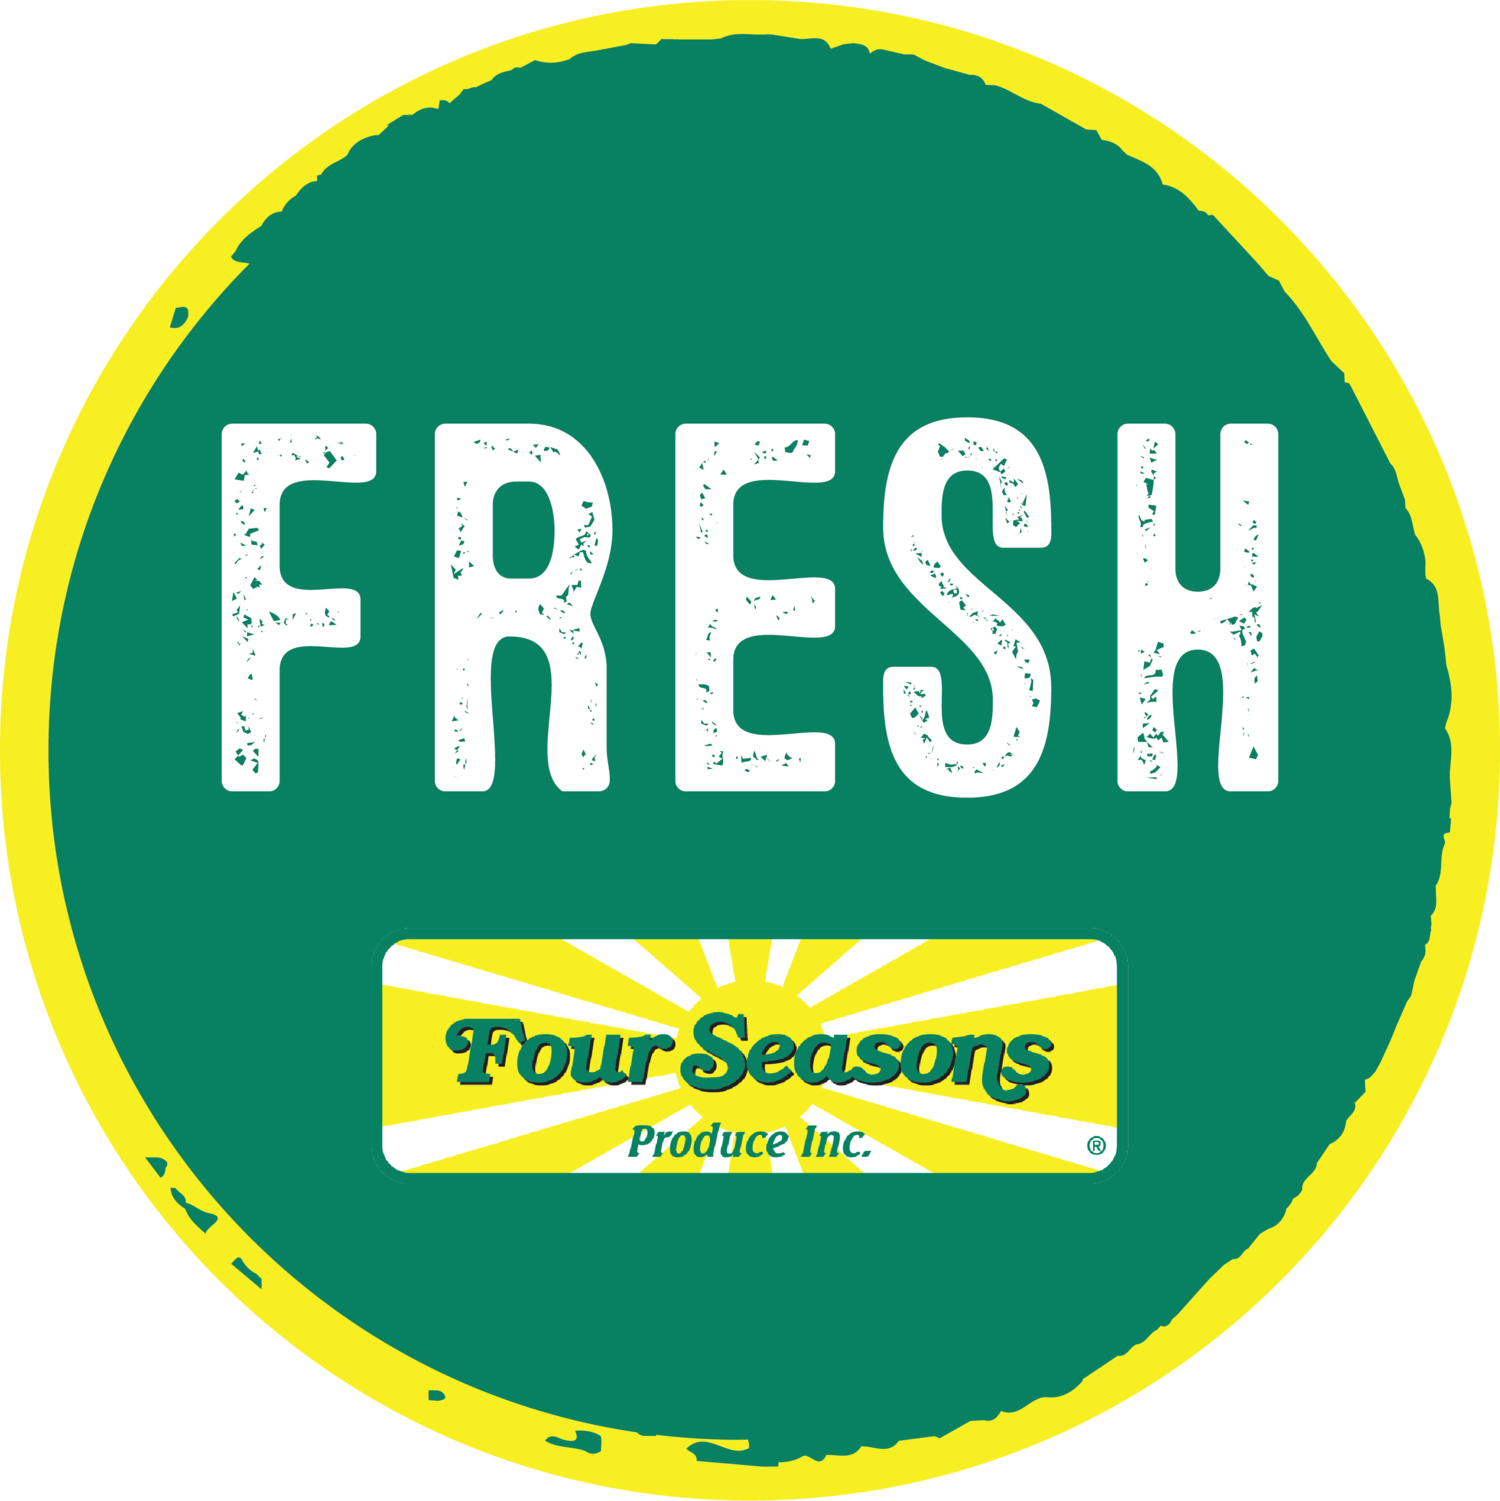 Four Seasons Fresh - A FOUR SEASONS PRODUCE SITE